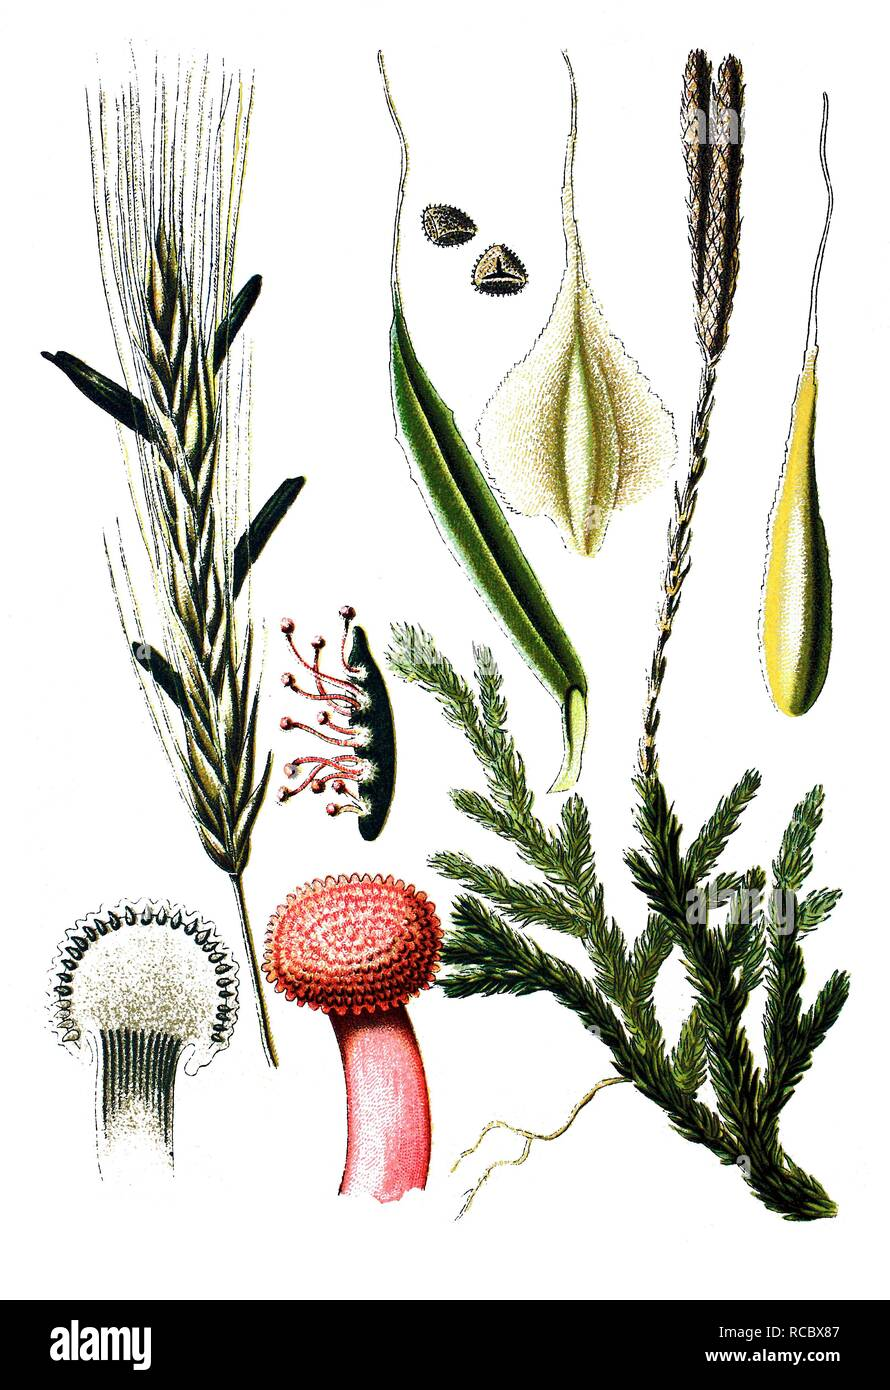 Ergot (Claviceps purpures), left, Wolf's-foot Clubmoss or Groundpine (Lycopodium clavatum), right, medicinal plants - Stock Image